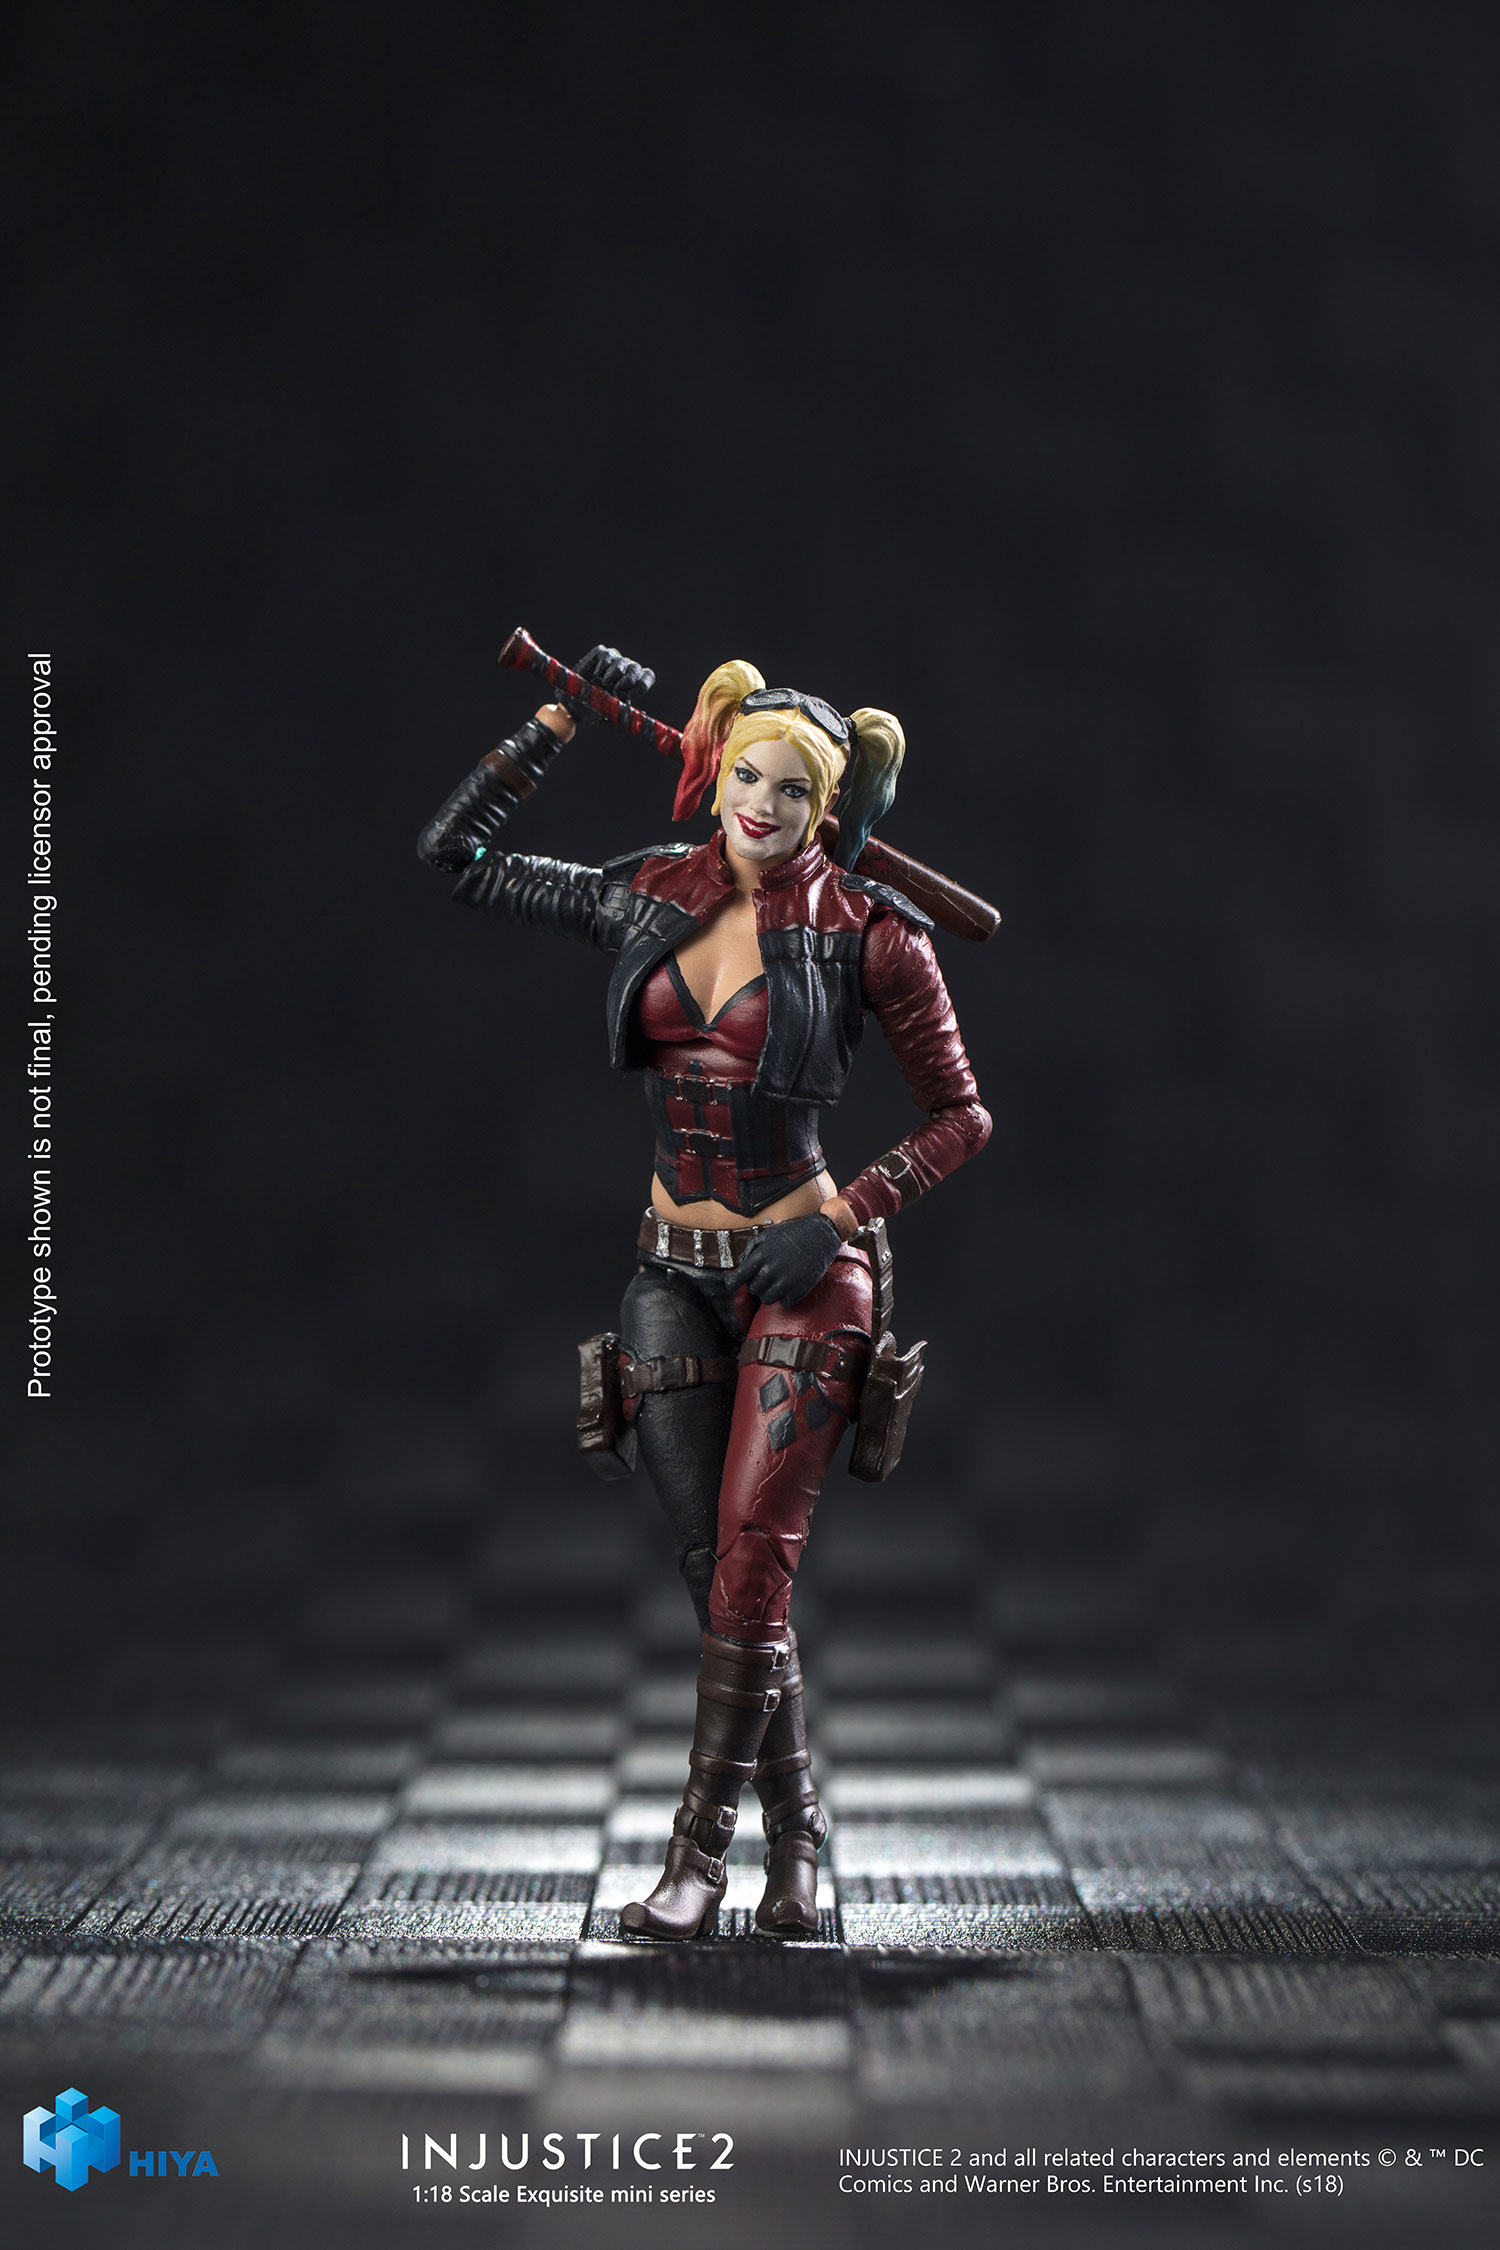 Pre-Orders Live for the Injustice 2 Harley Quinn by Hiya Toys